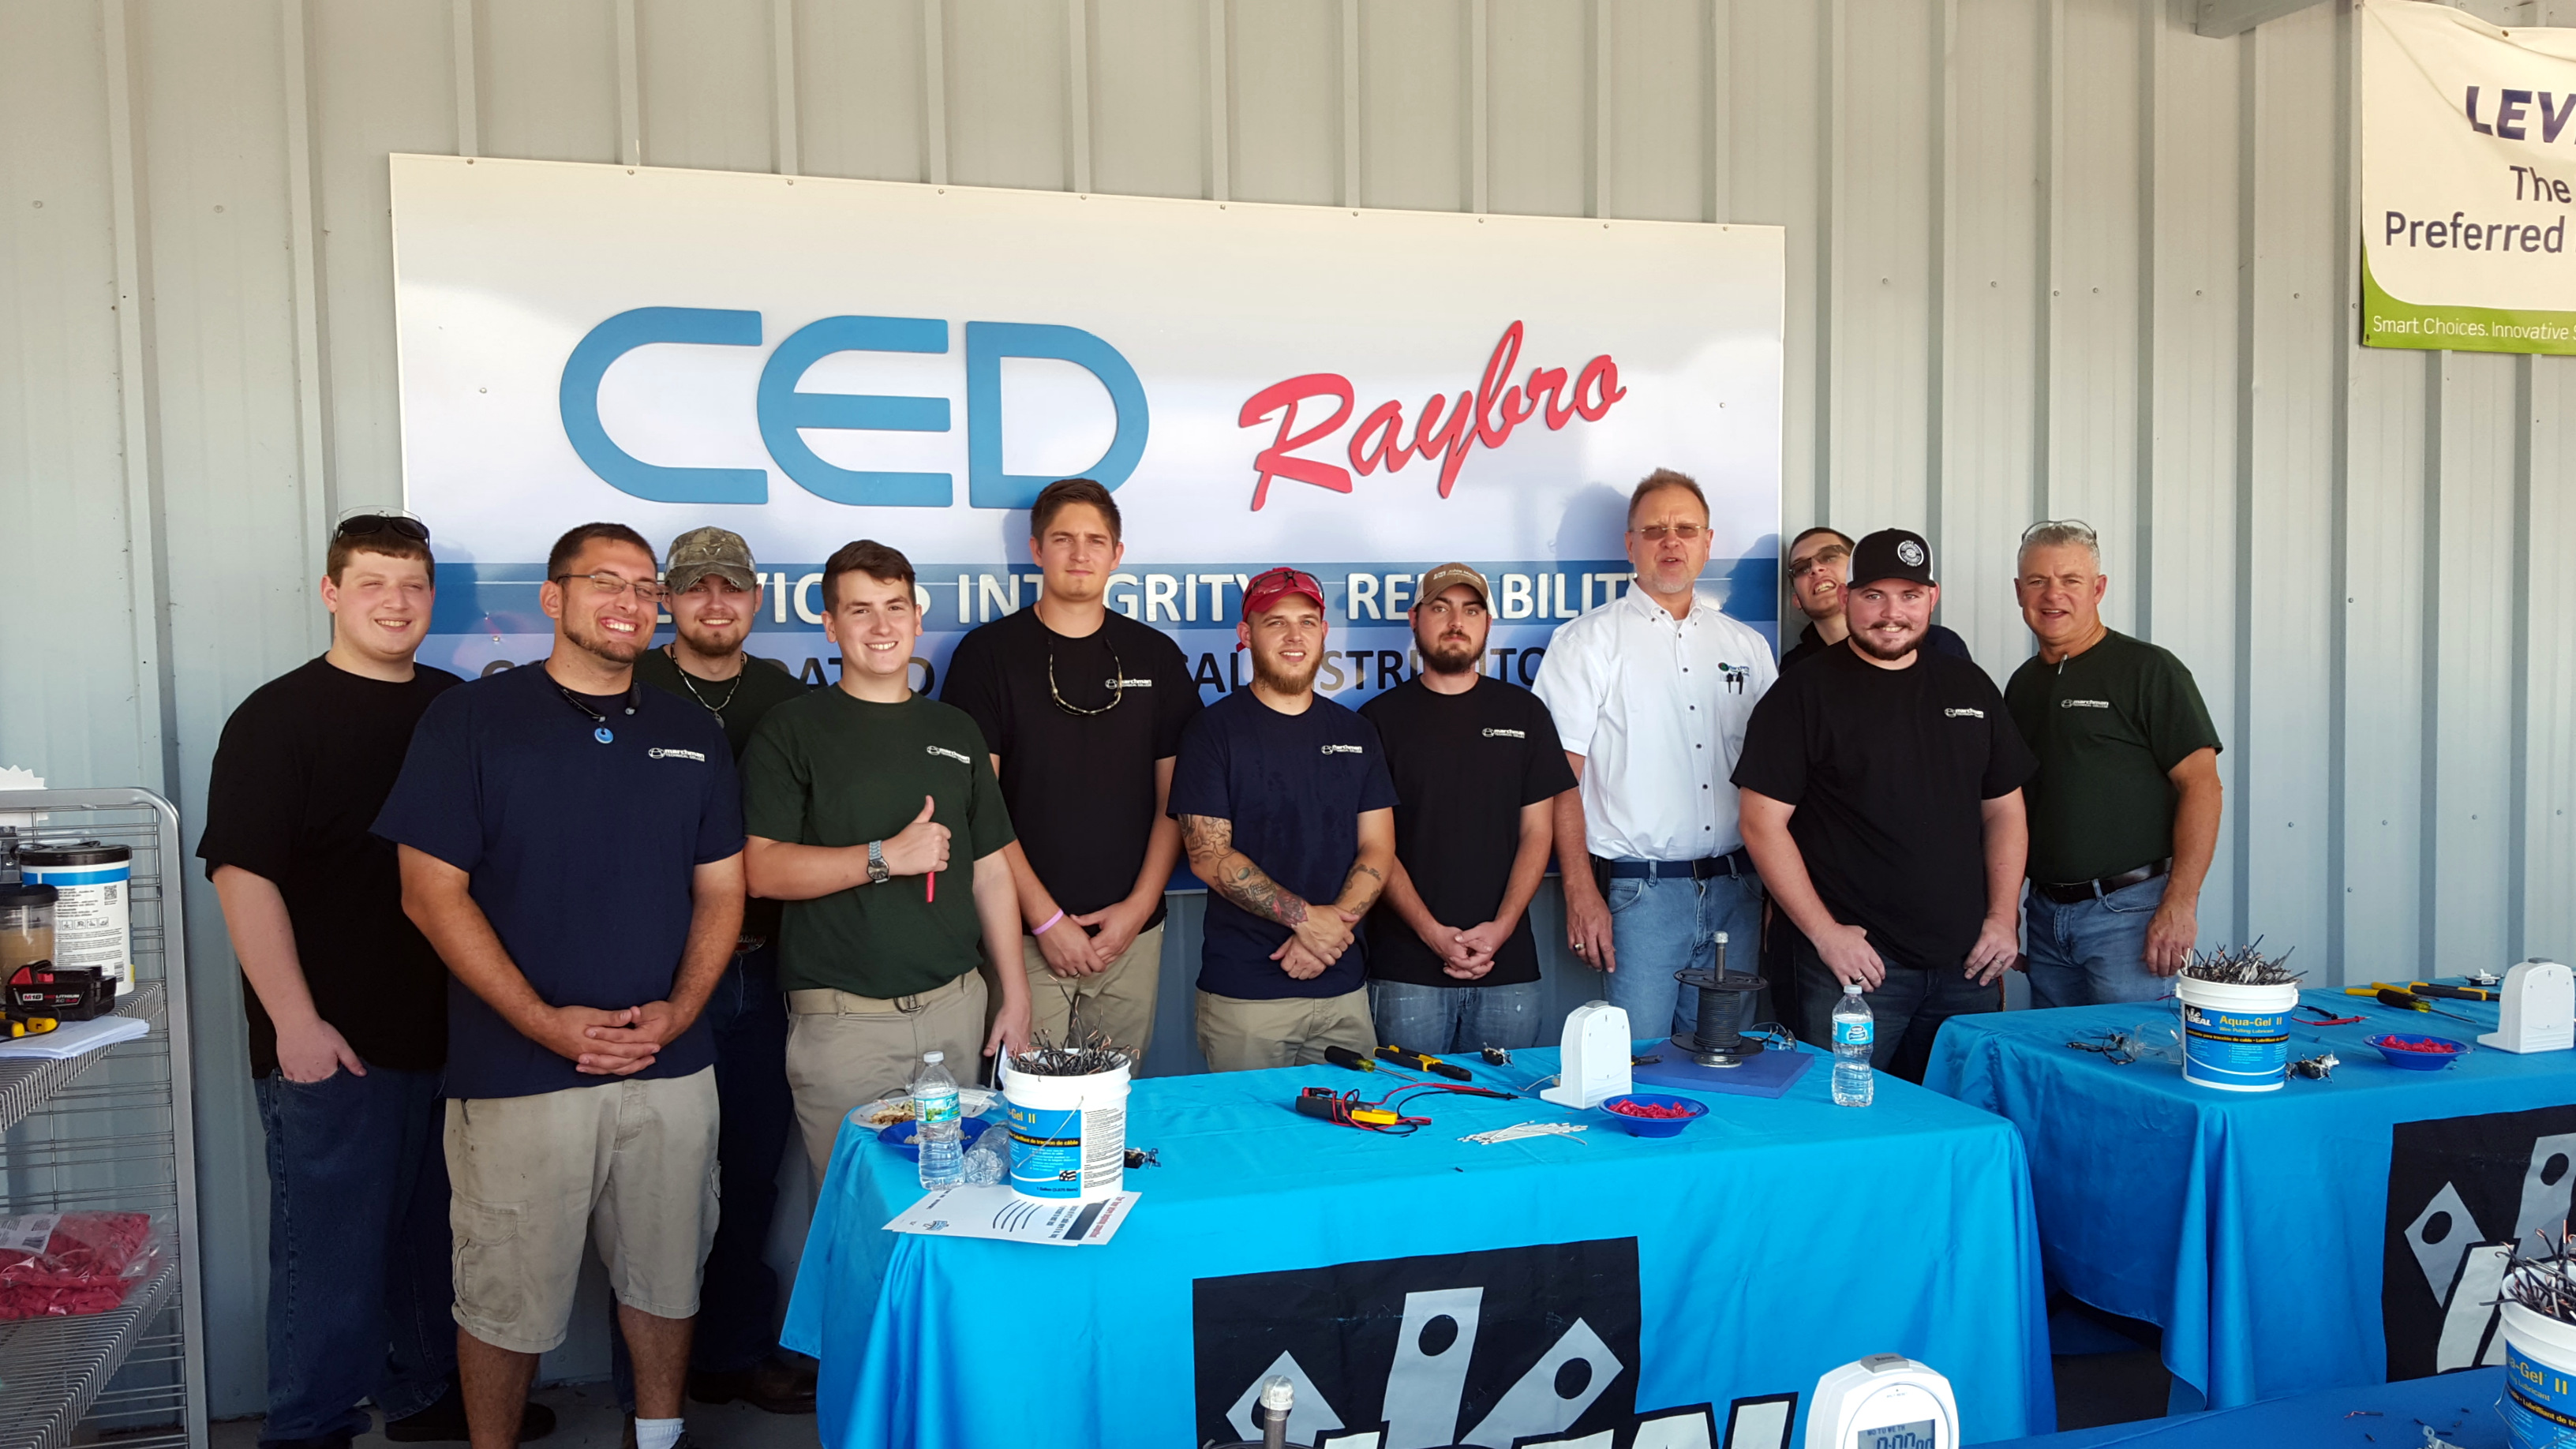 Ced Hosts The Ideal National Championship Ced